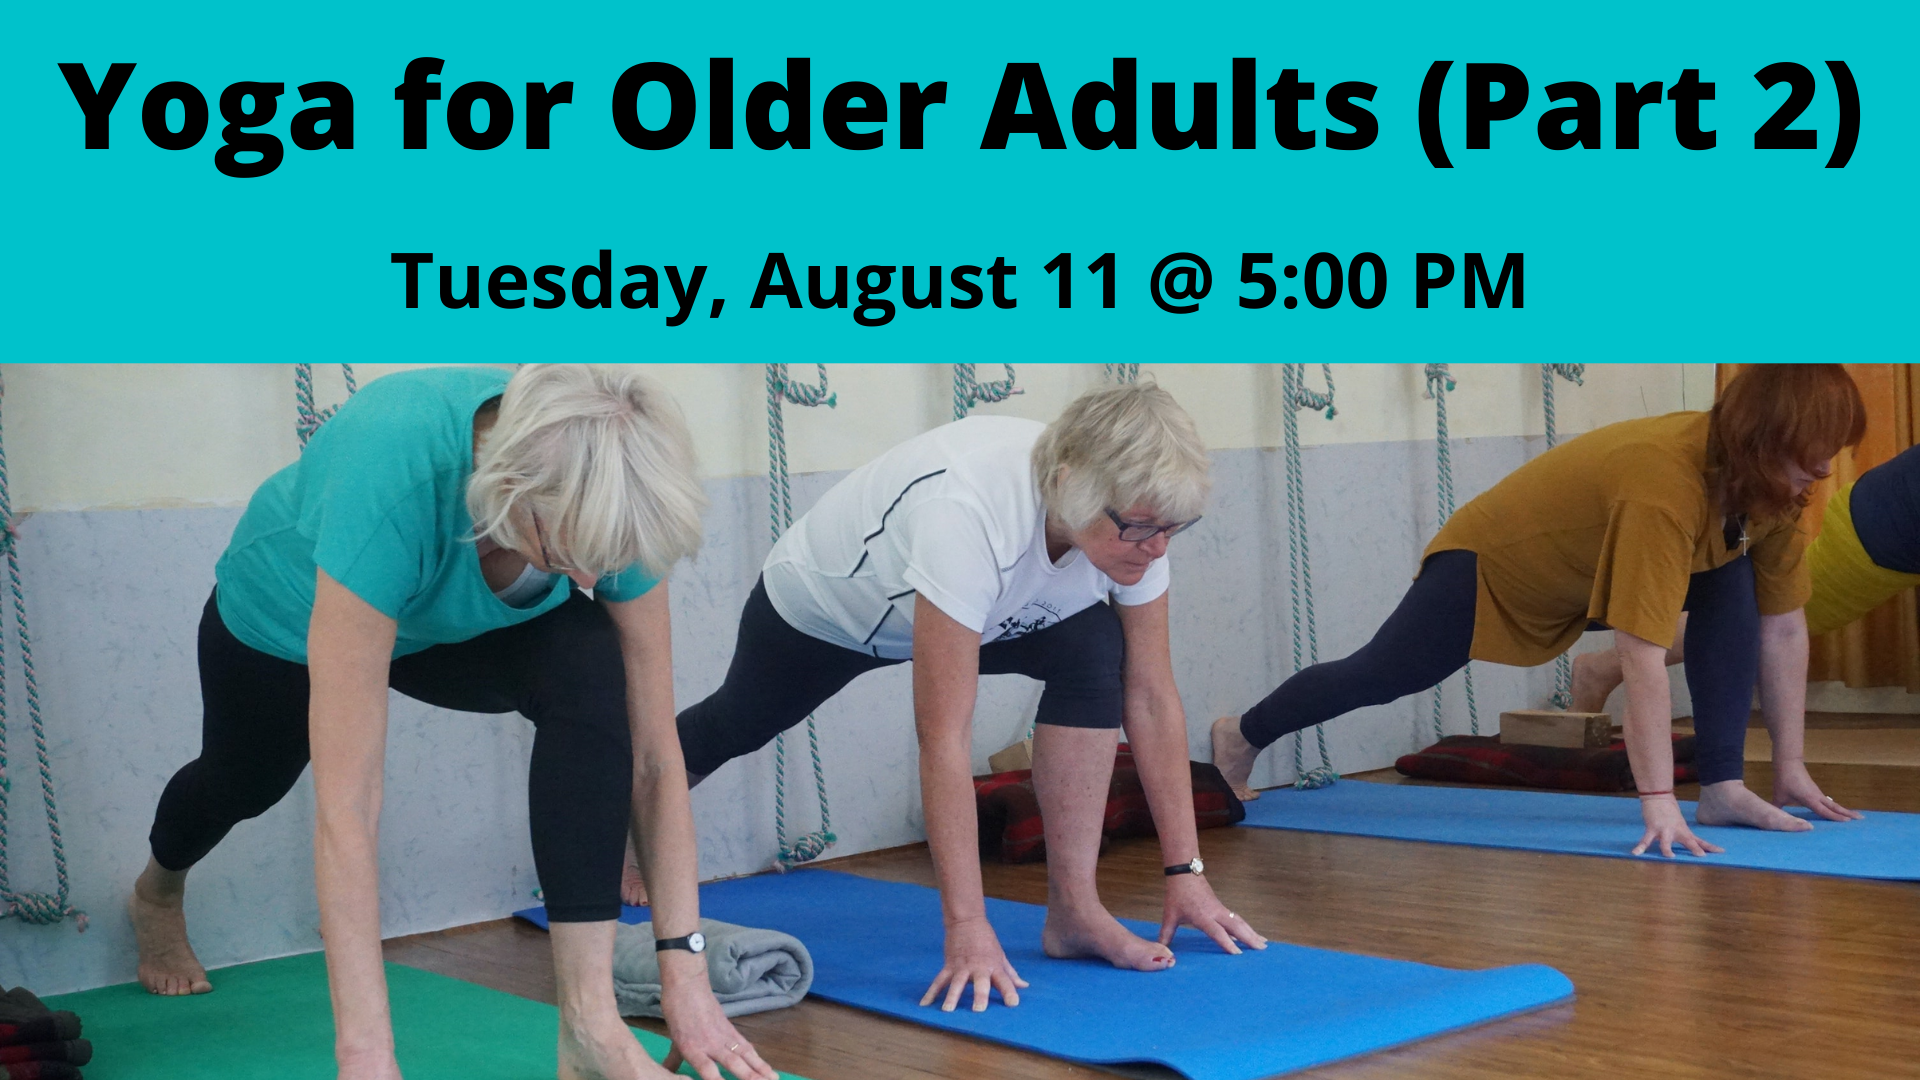 Yoga for Older Adults (Part 2)